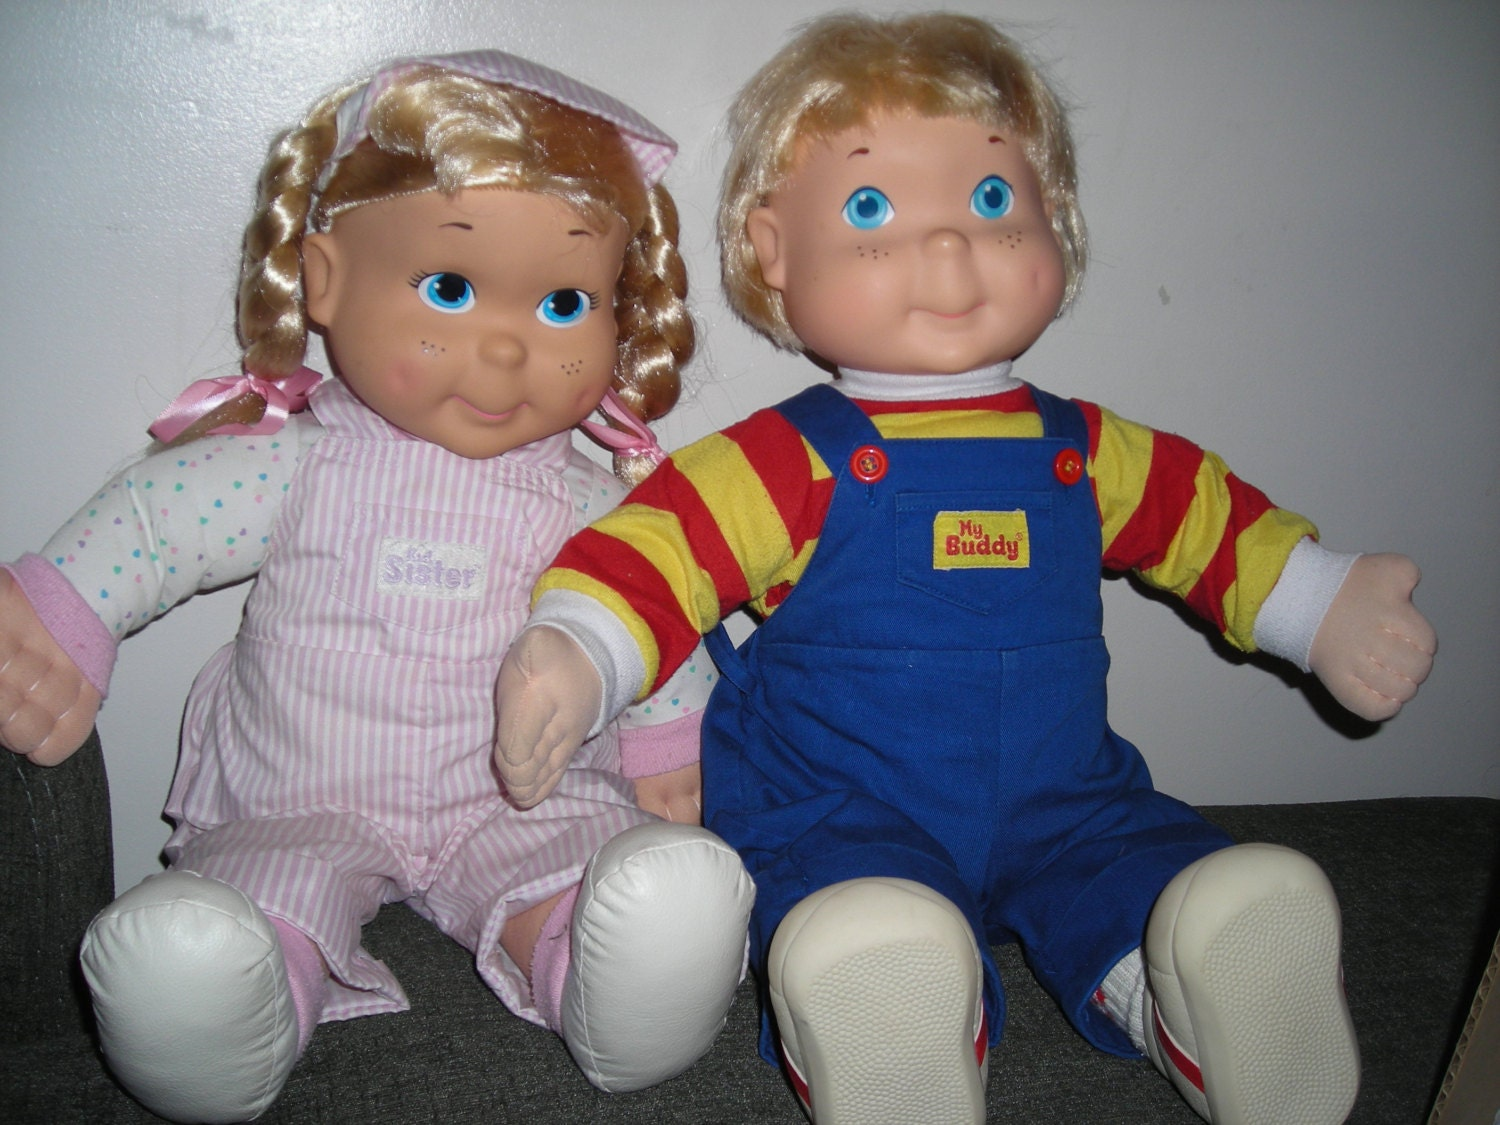 My Buddy And Kid Sister Dolls